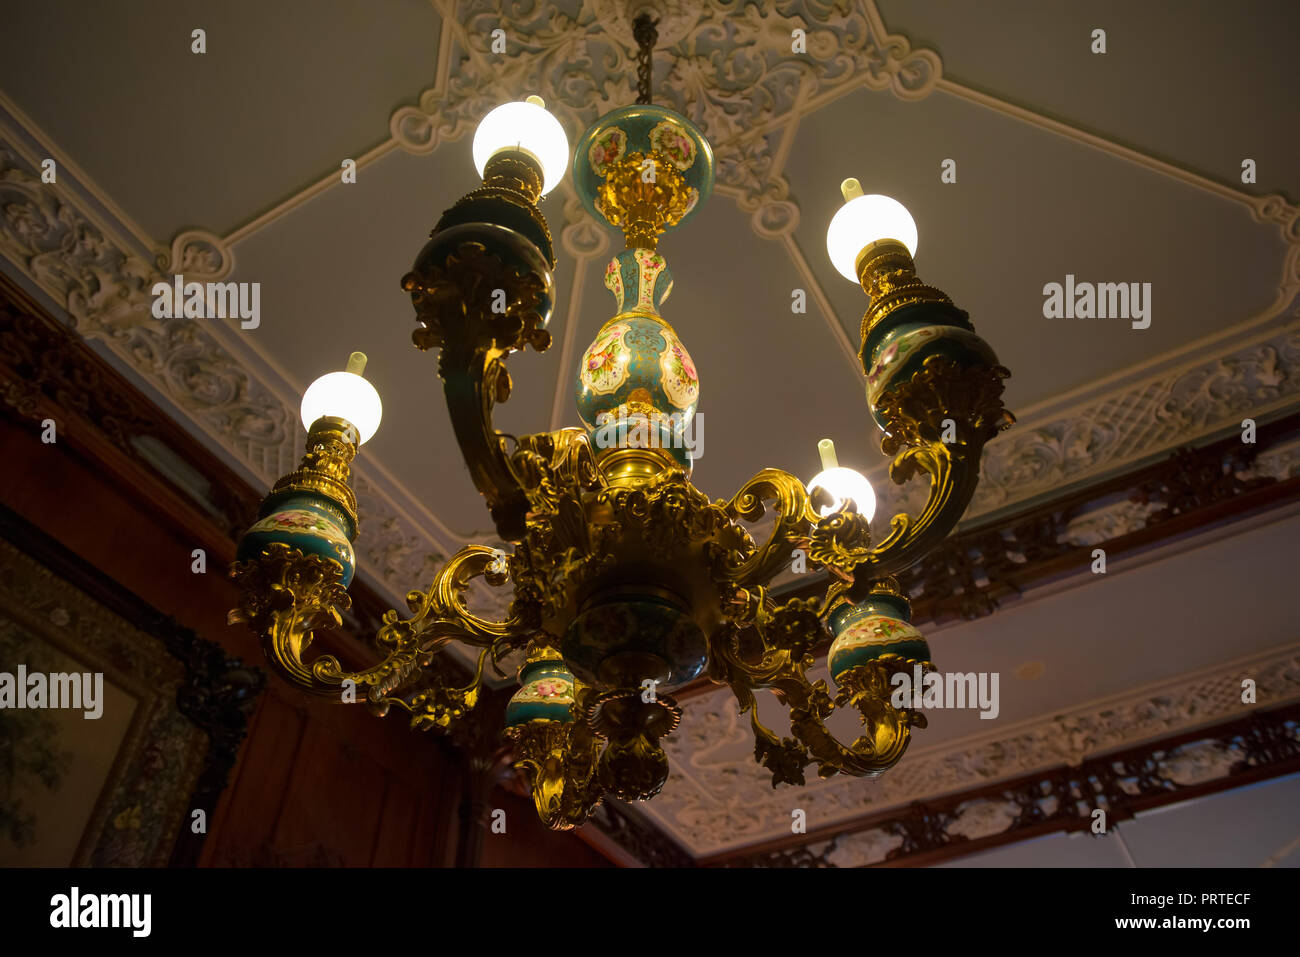 SAINT PETERSBURG, RUSSIA - AUGUST 22, 2017: Decorative chandelier with candlesticks. Interior of the Yusupov Palace on the Moika river embankment, 94. - Stock Image